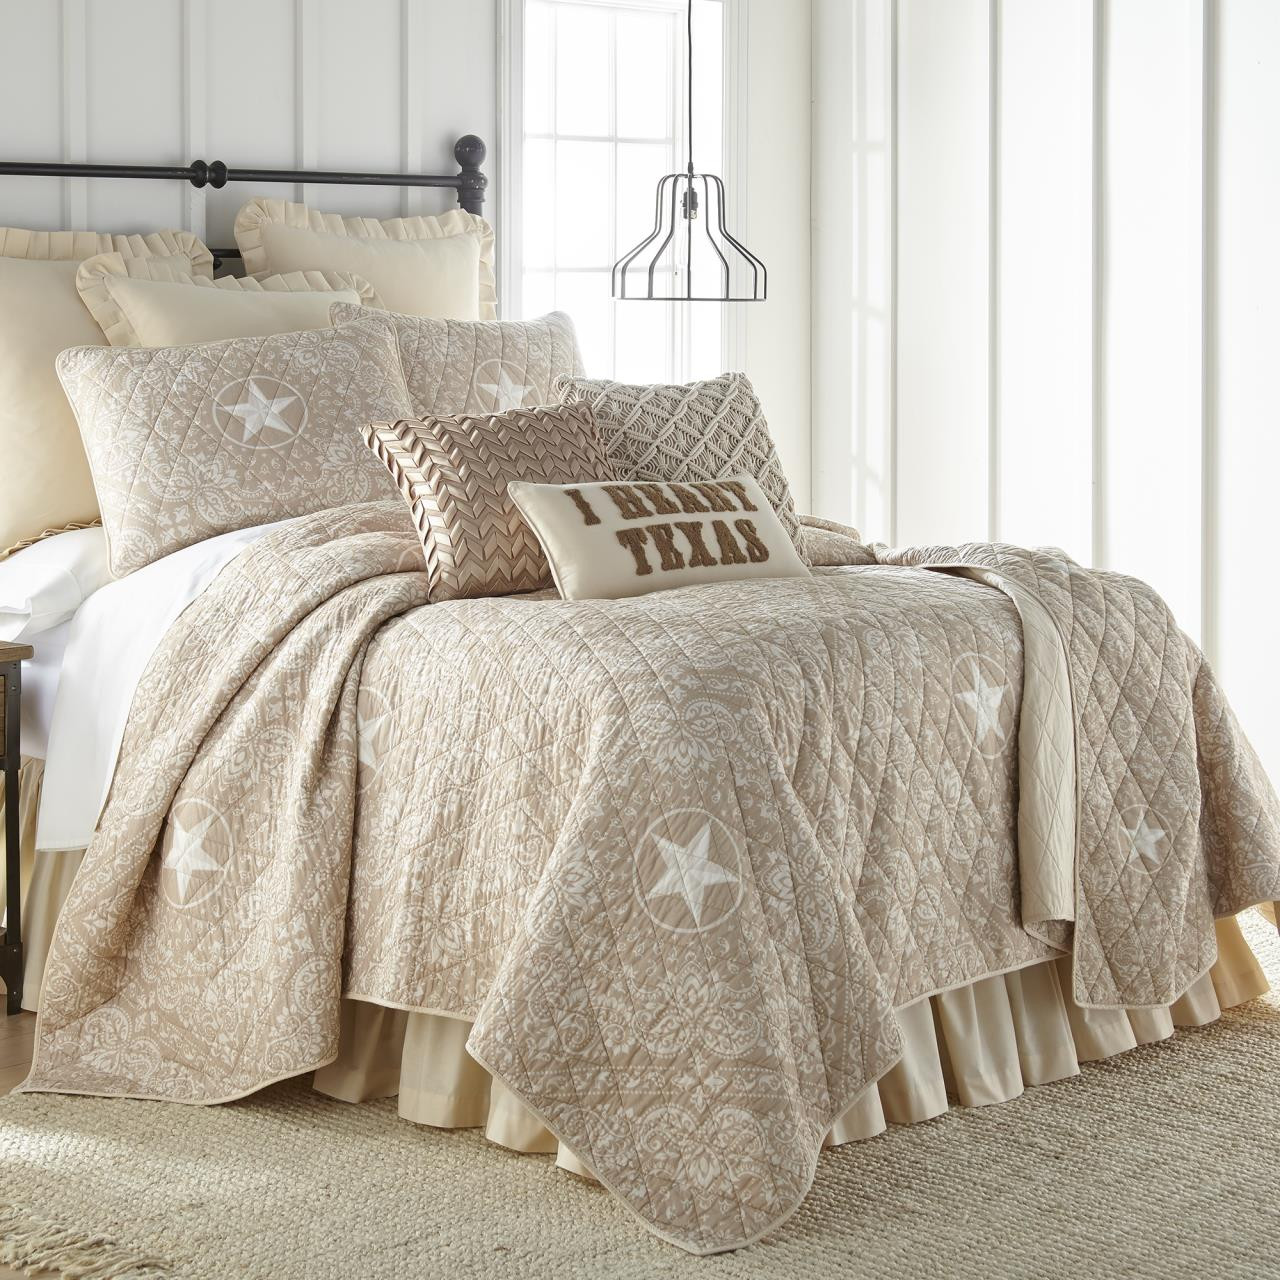 Texas Brown Bandera Quilt Collection -